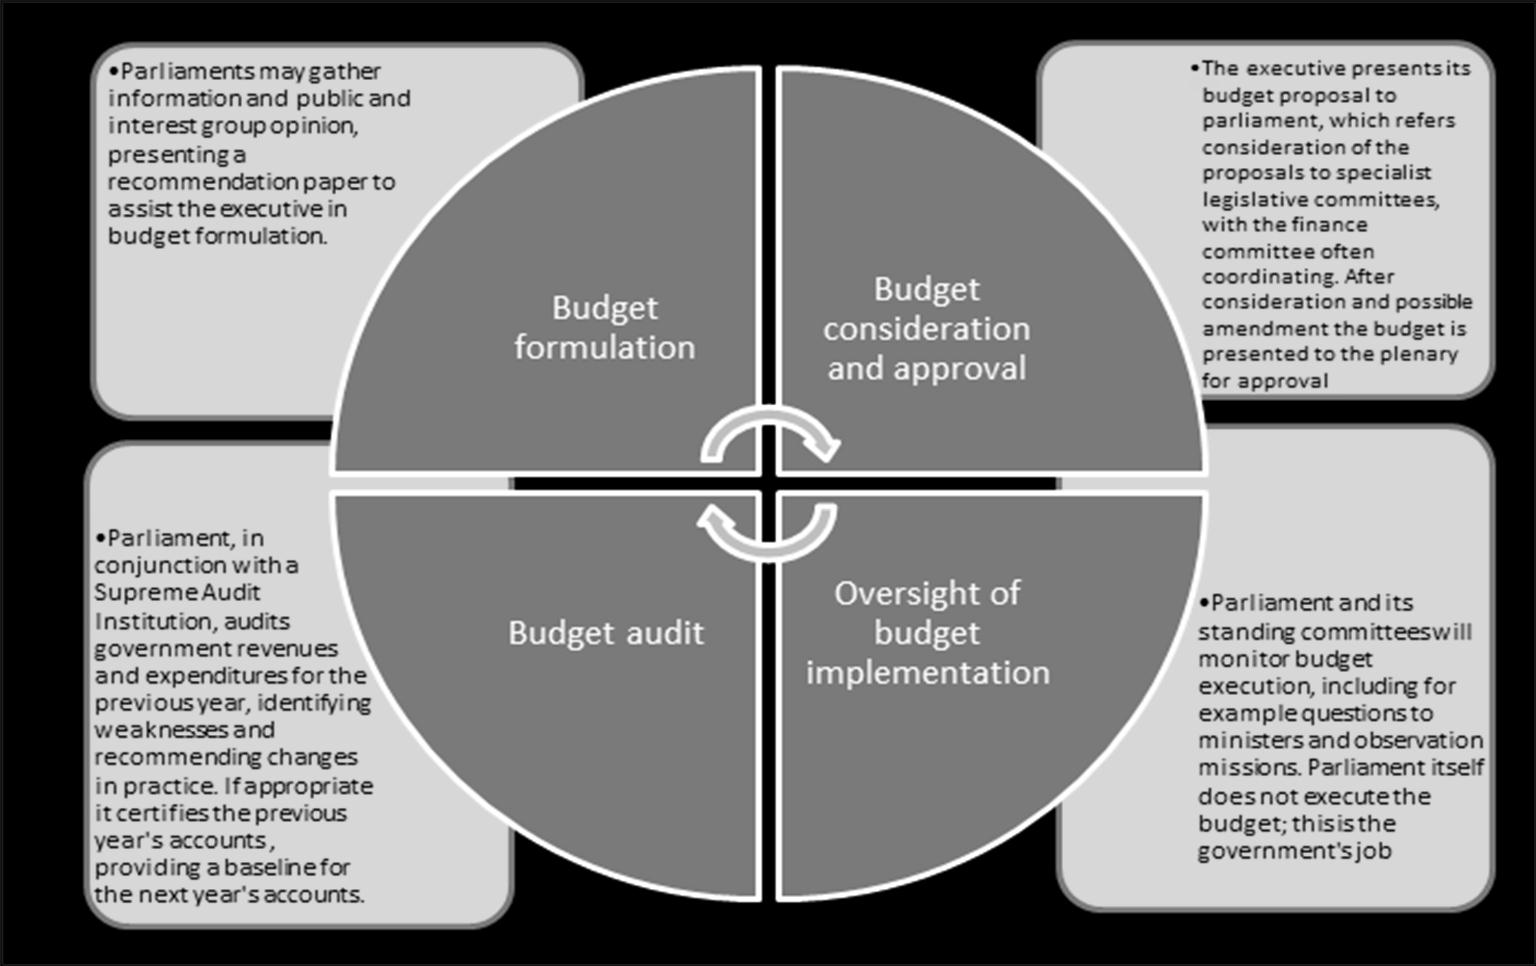 Traditionally, parliament has been involved mainly at the approval and the audit stage. Increasingly, however, parliaments are playing a key role in gathering input at the budget development stage.